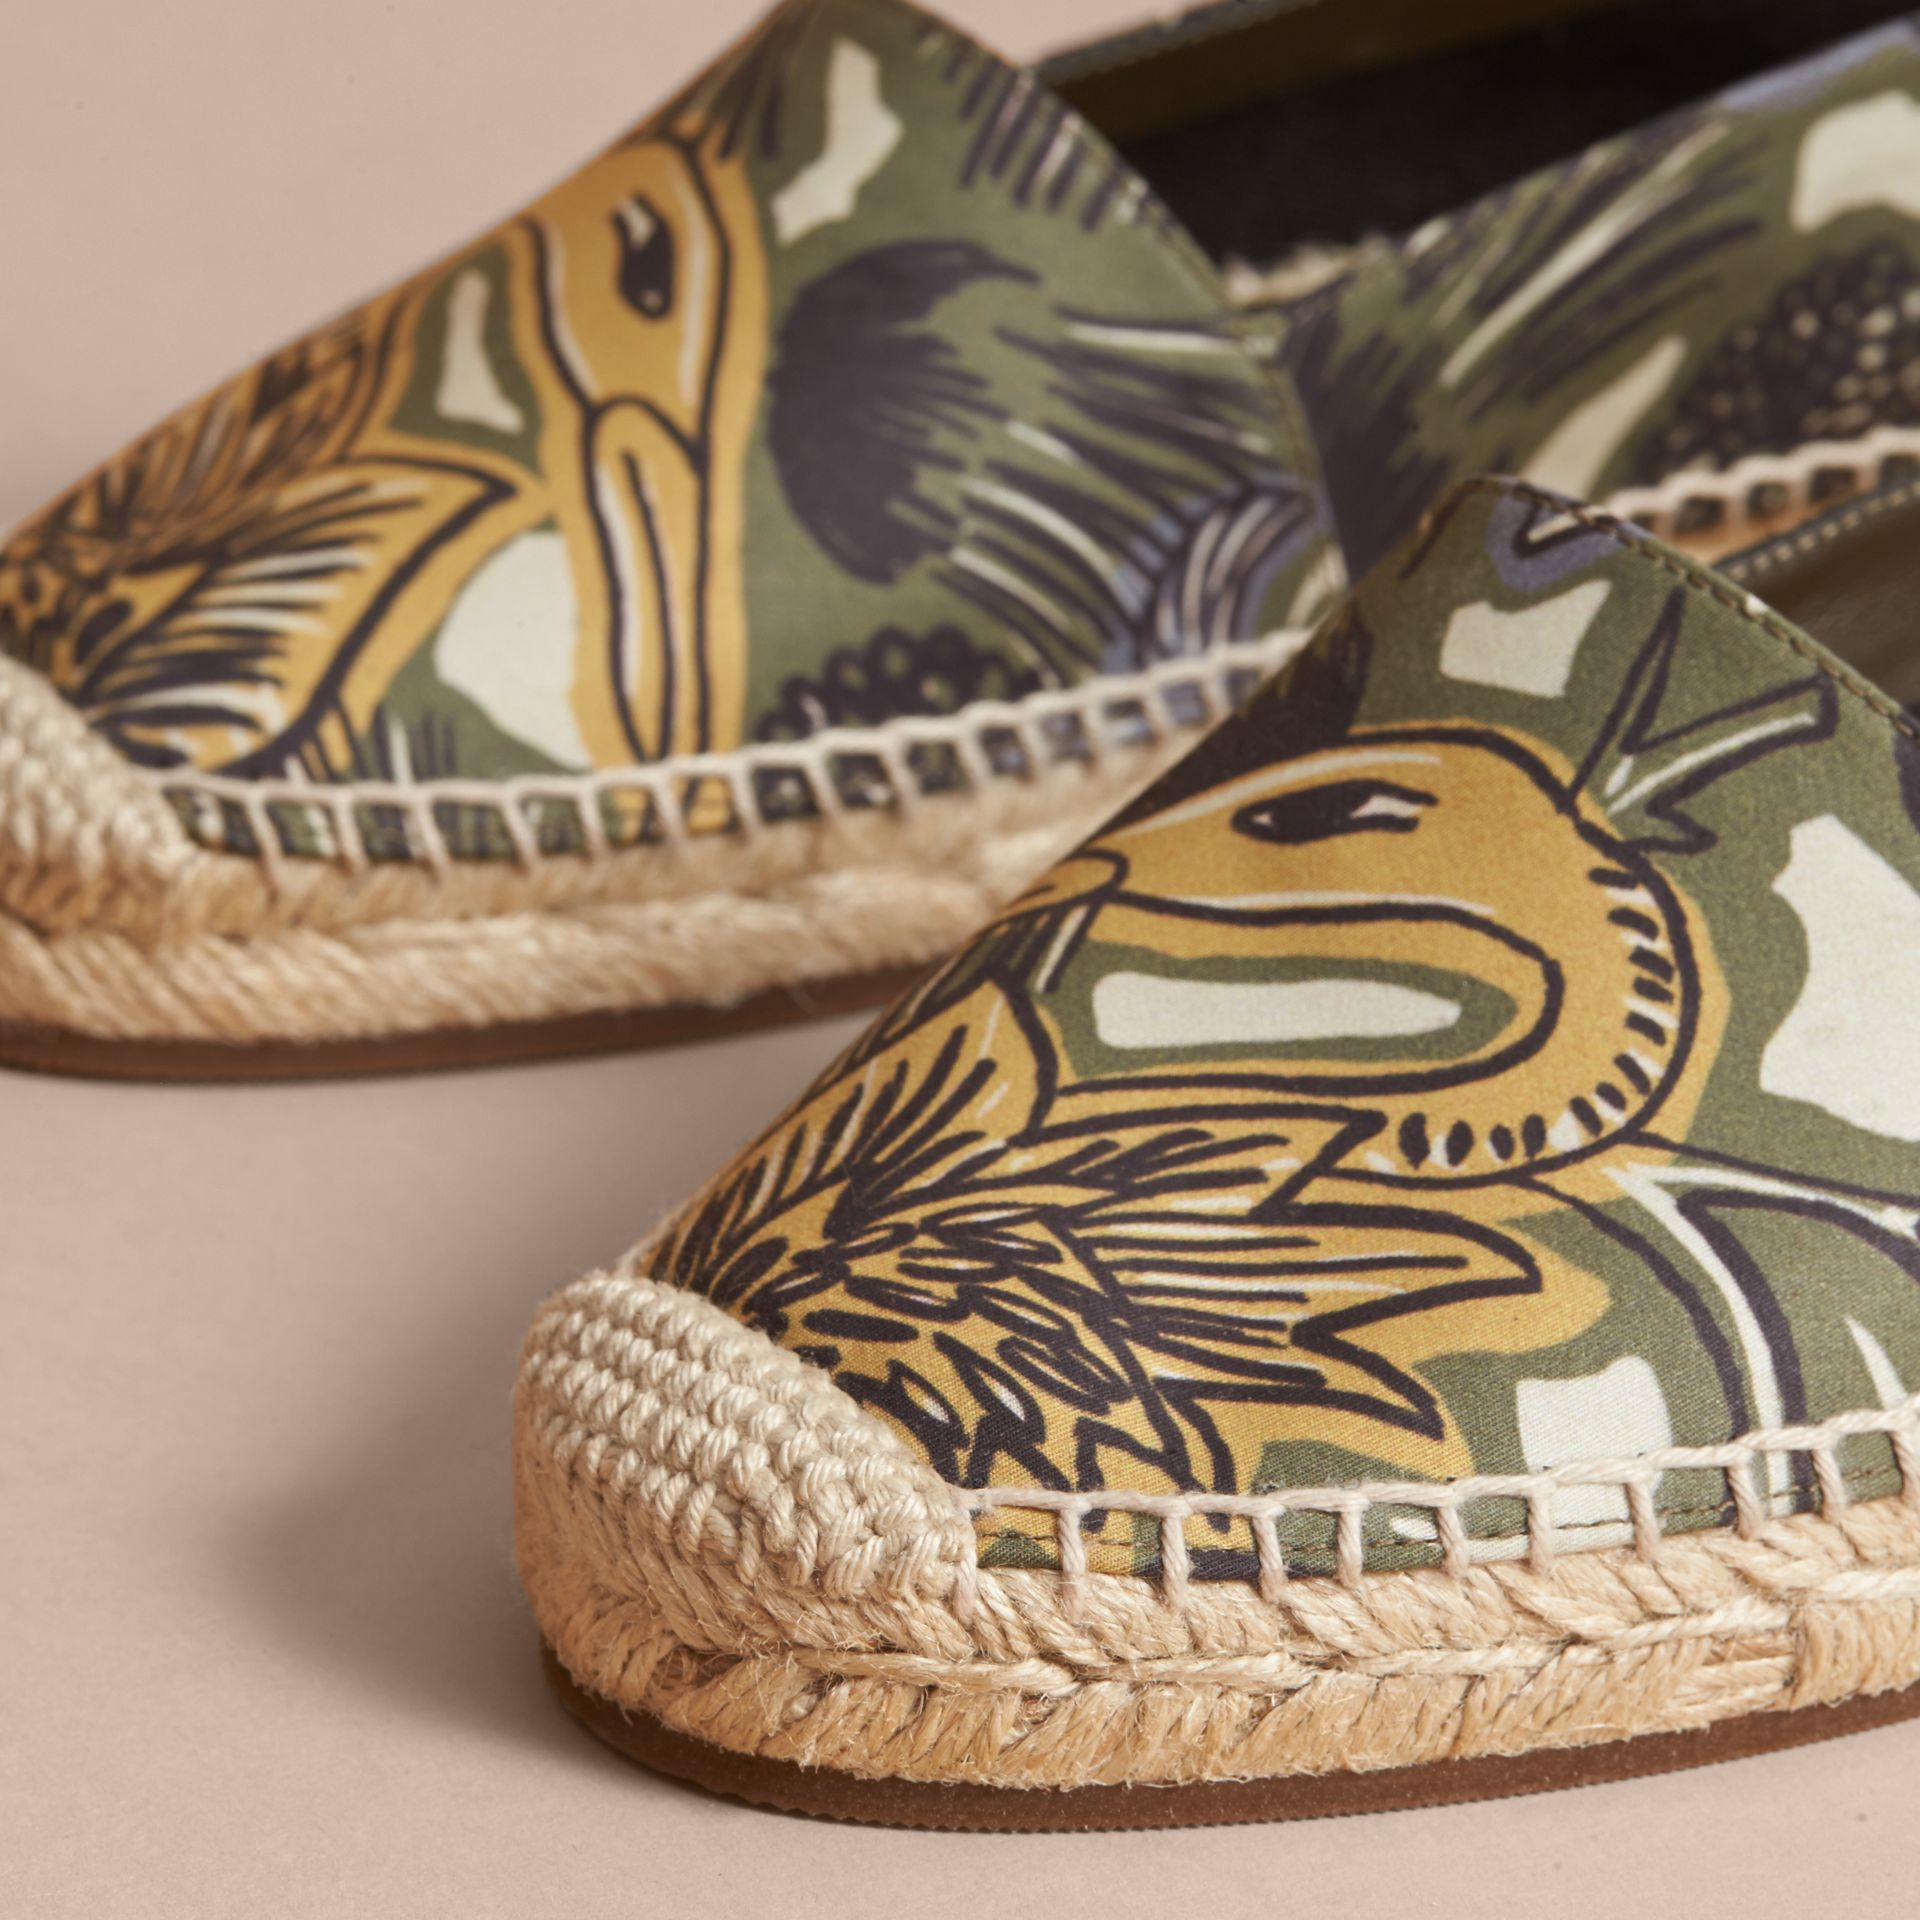 Beasts Print Cotton Blend Espadrilles in Clay Green - Women | Burberry United Kingdom - gallery image 2